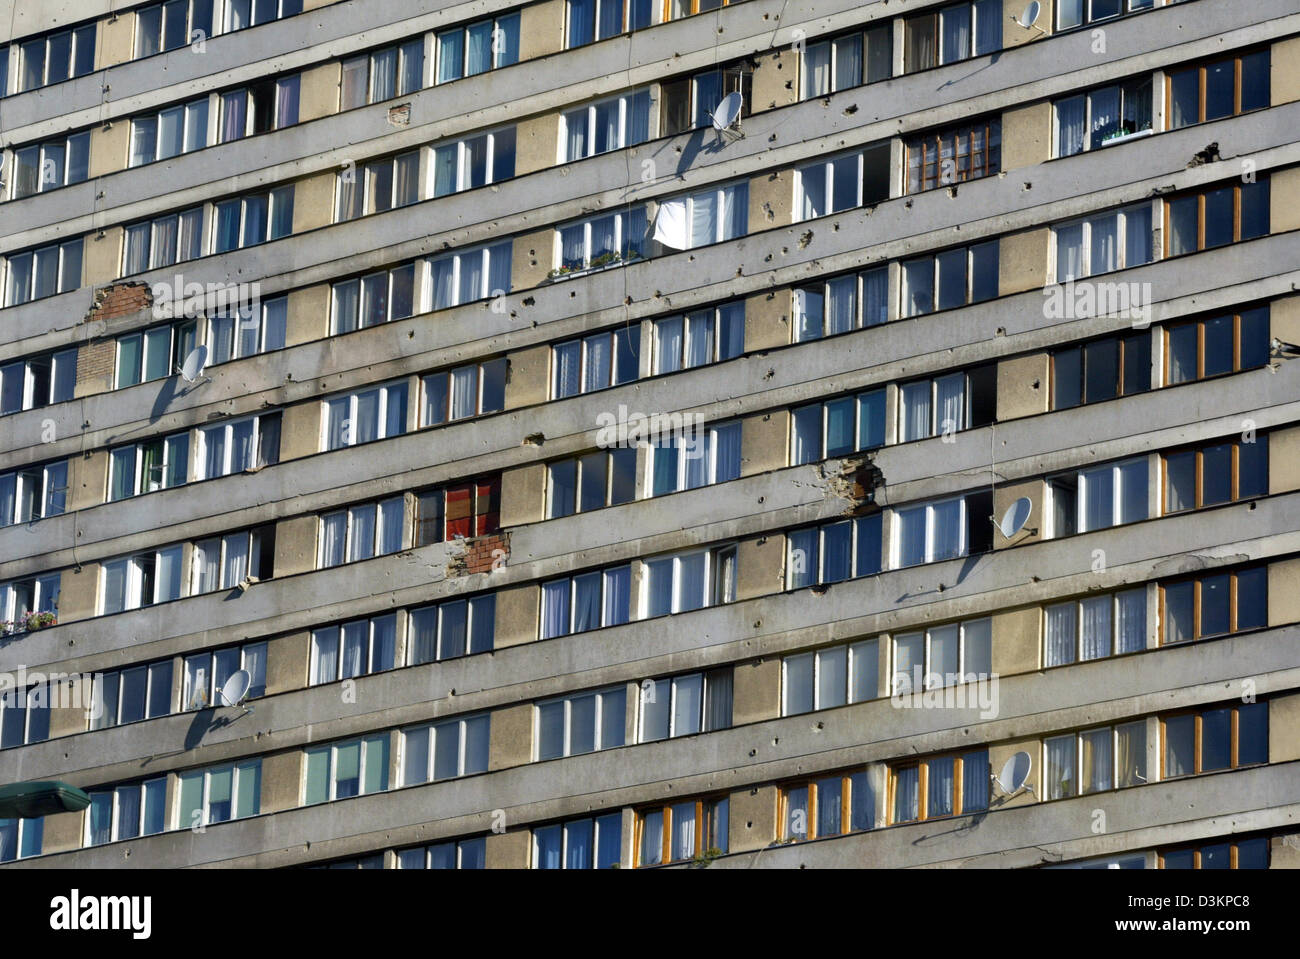 (dpa) - The picture shows an apartment building in Sarajevo, Bosnia and Herzegovina, 2 September 2004. The facade - Stock Image